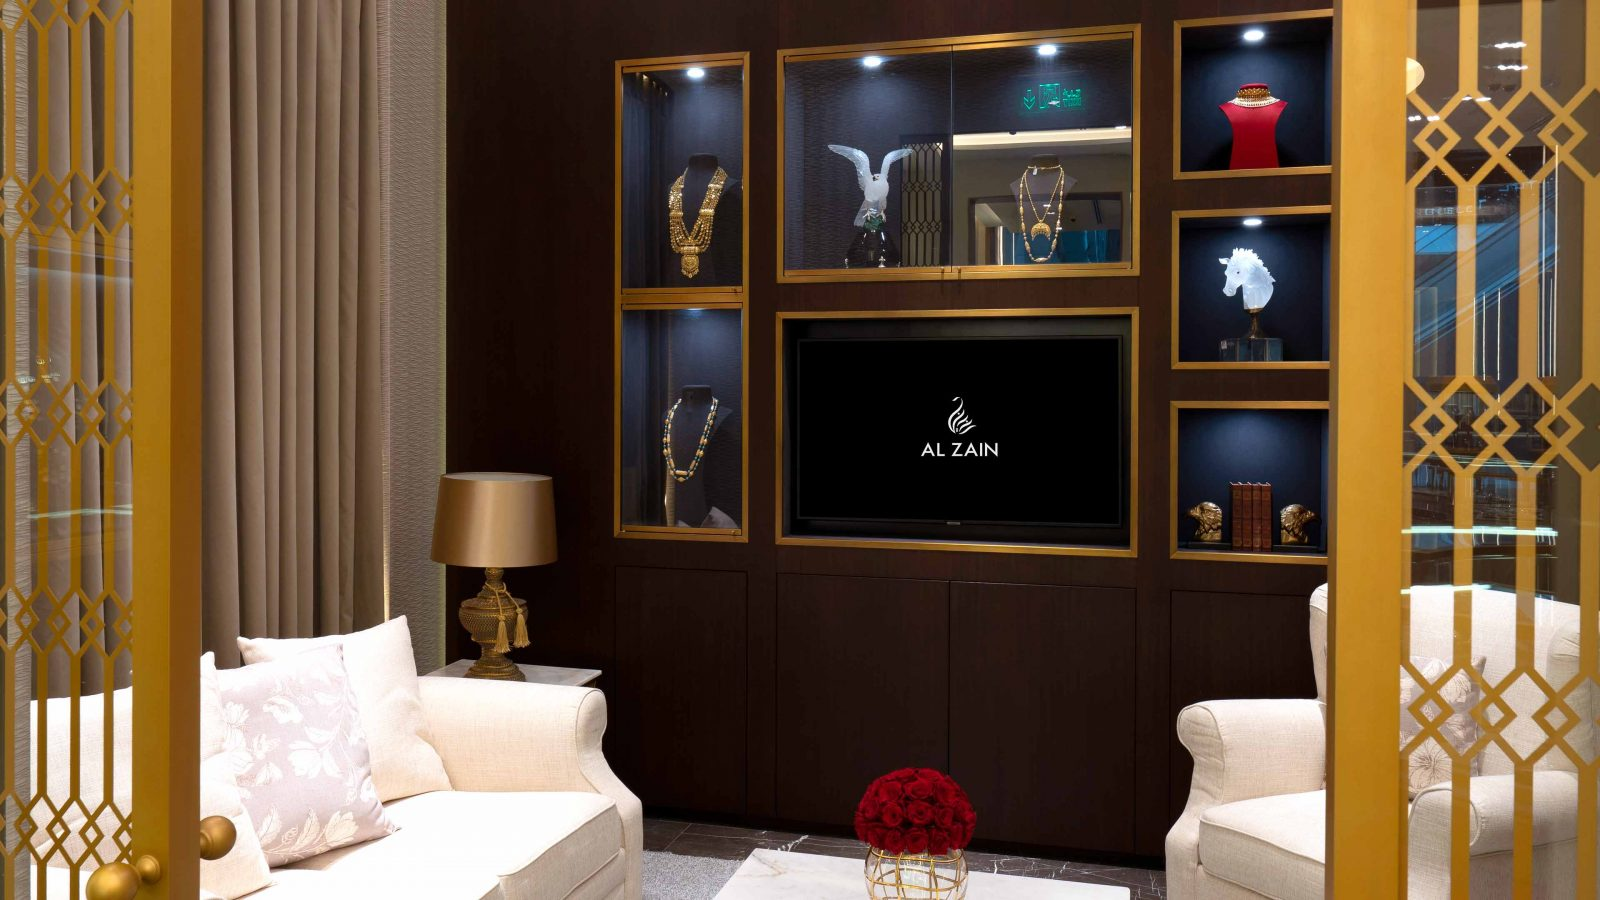 Lighting Design Luxury Retail Al Zain Jewellery Boutique Client Lounge Seating Display Cases Studio N